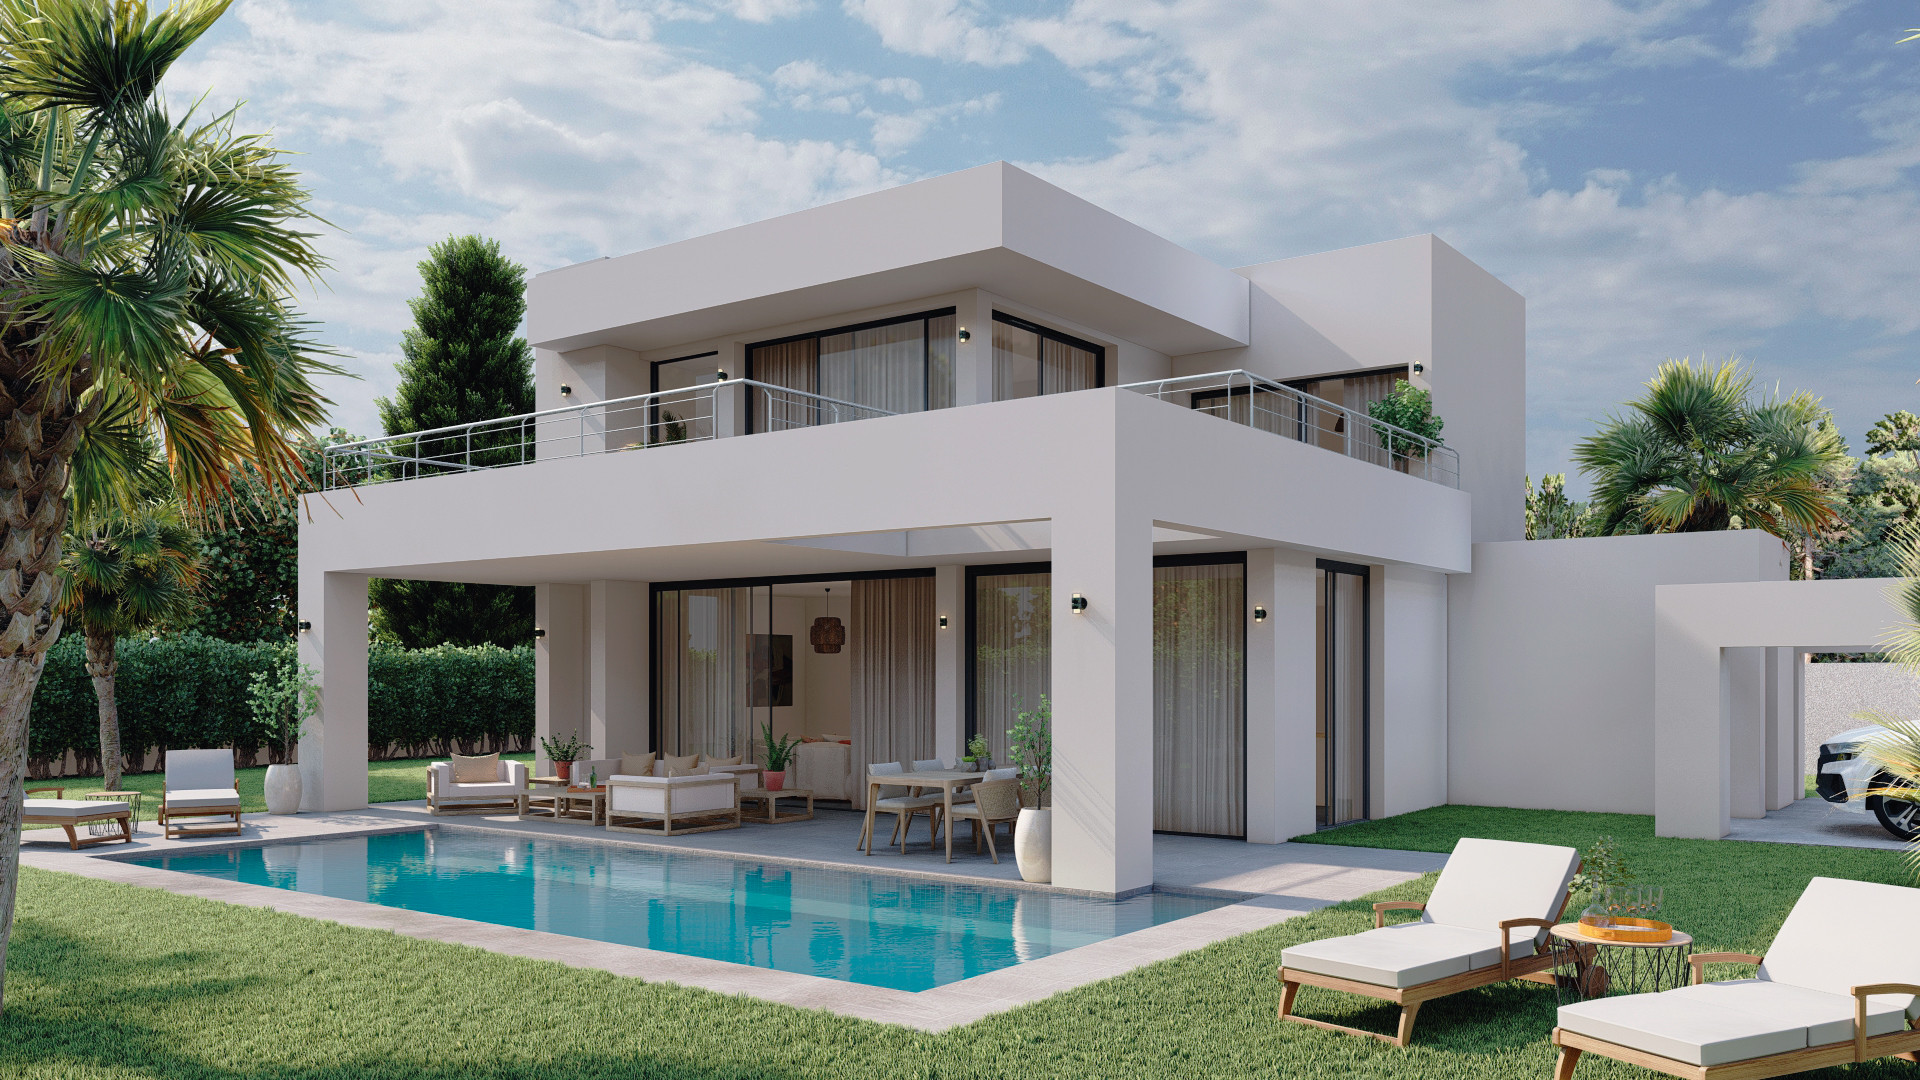 Complex of brand new modern contemporary beachside villas for sale in New Golden Mile